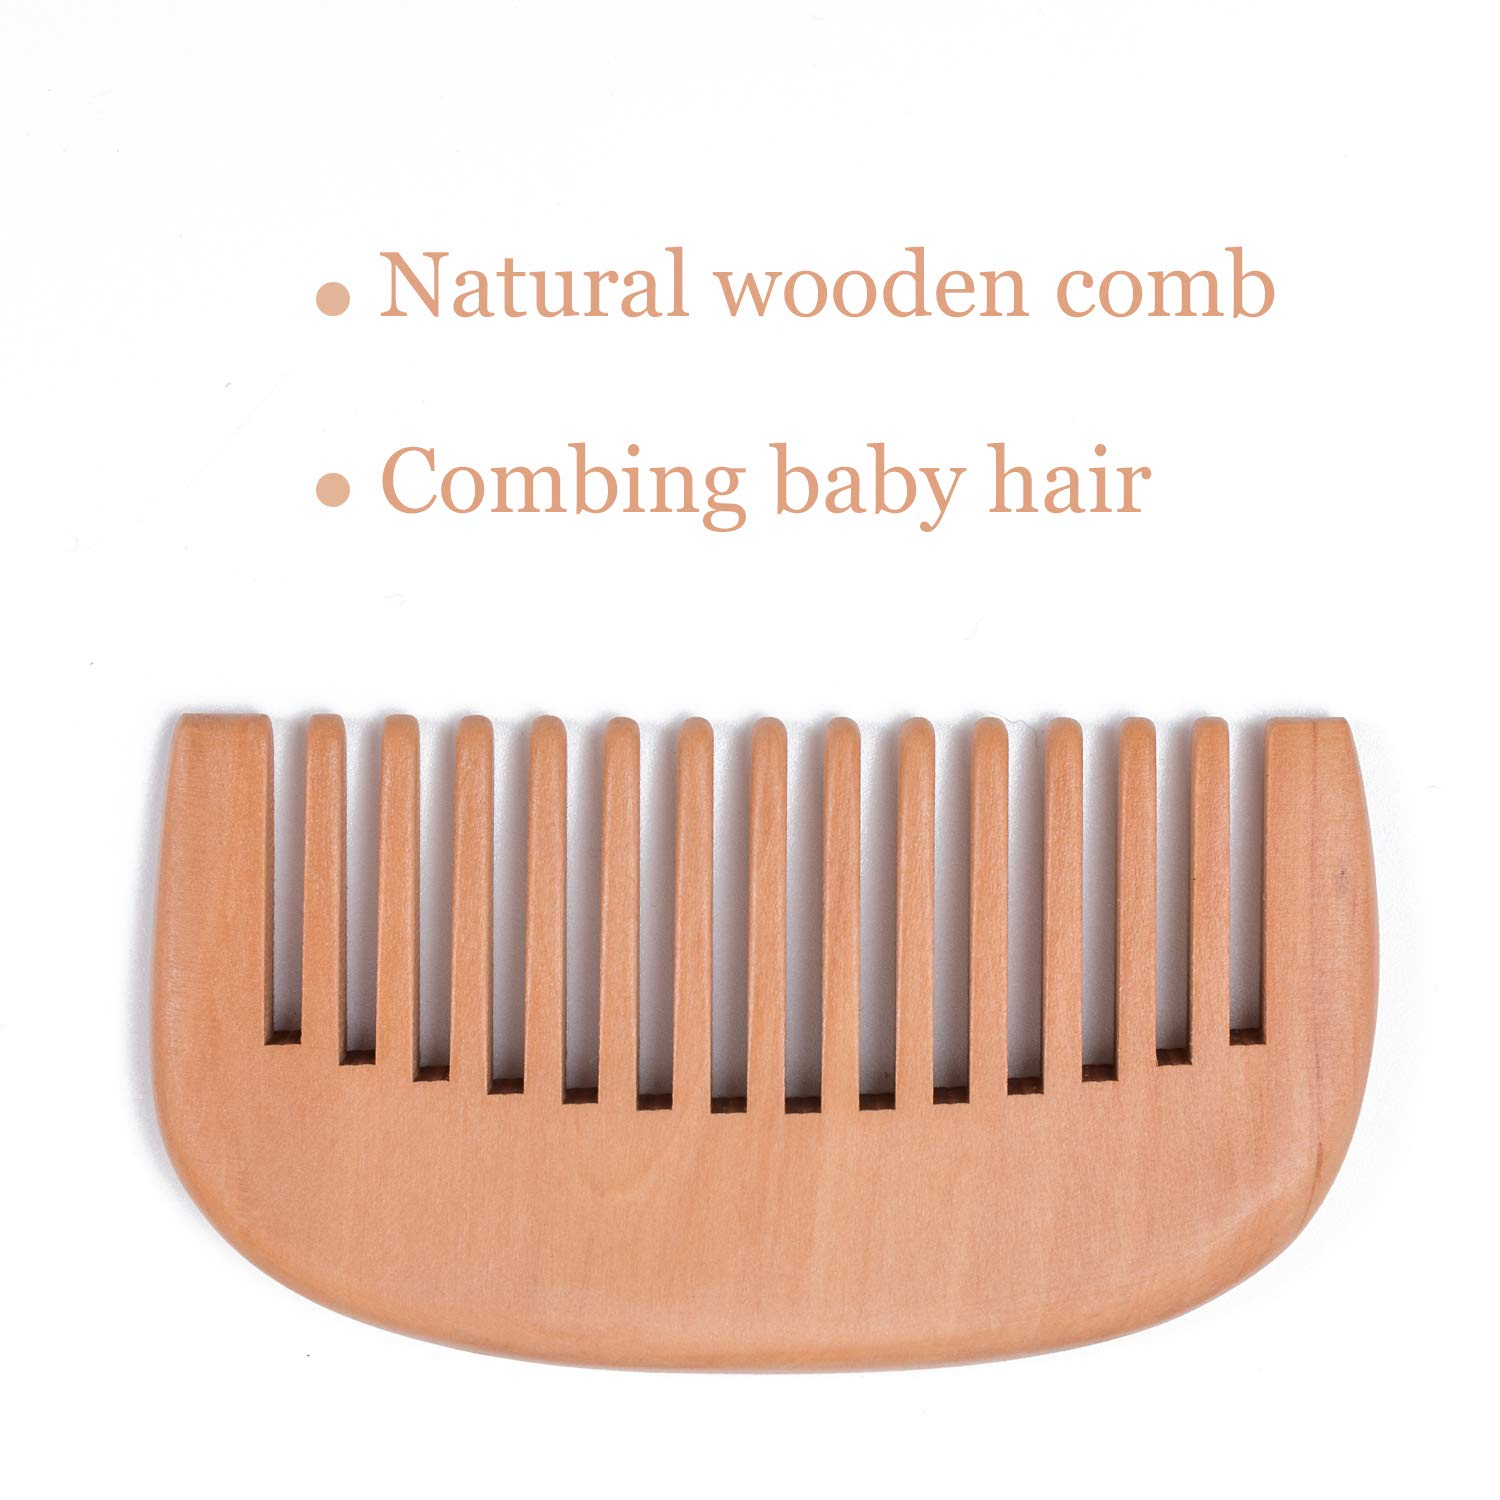 MJF 3-Piece Wooden Baby Hair Brush and Comb Set-The Best Gift for Newborns and Toddlers to Comb Their Hair-Natural Soft Goat Bristles and Eco-Friendly Safe Brush-Helps to Prevent or Cradle Cap